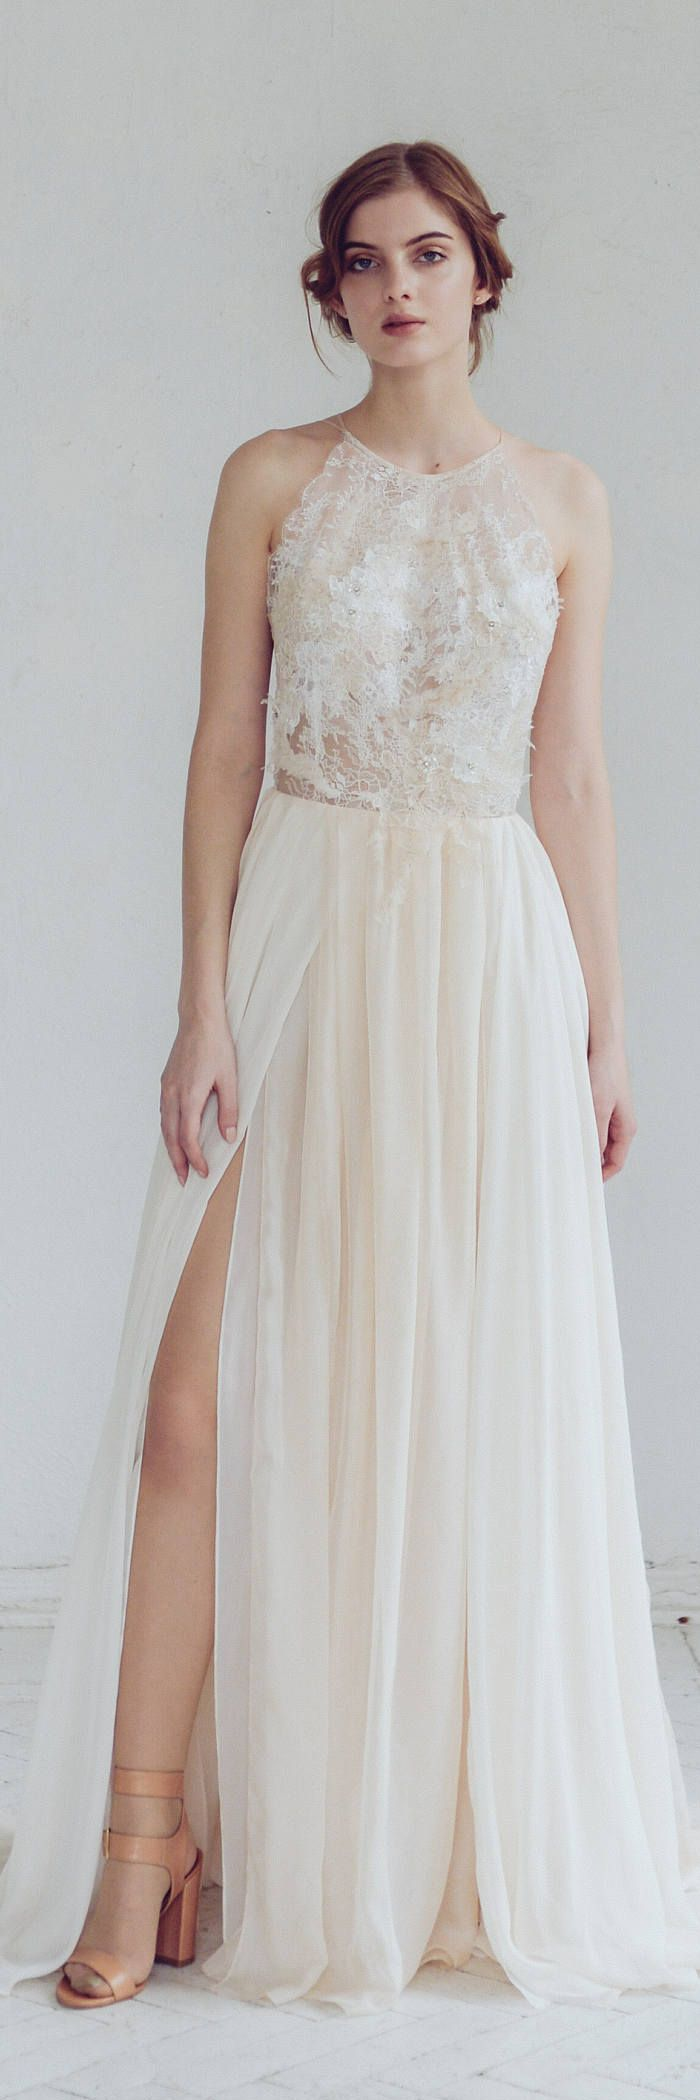 Silk wedding dress/ Melita/ Open back wedding gown, halter-neck wedding dress with slit, lace bridal gown with hand embroidery, summer dress